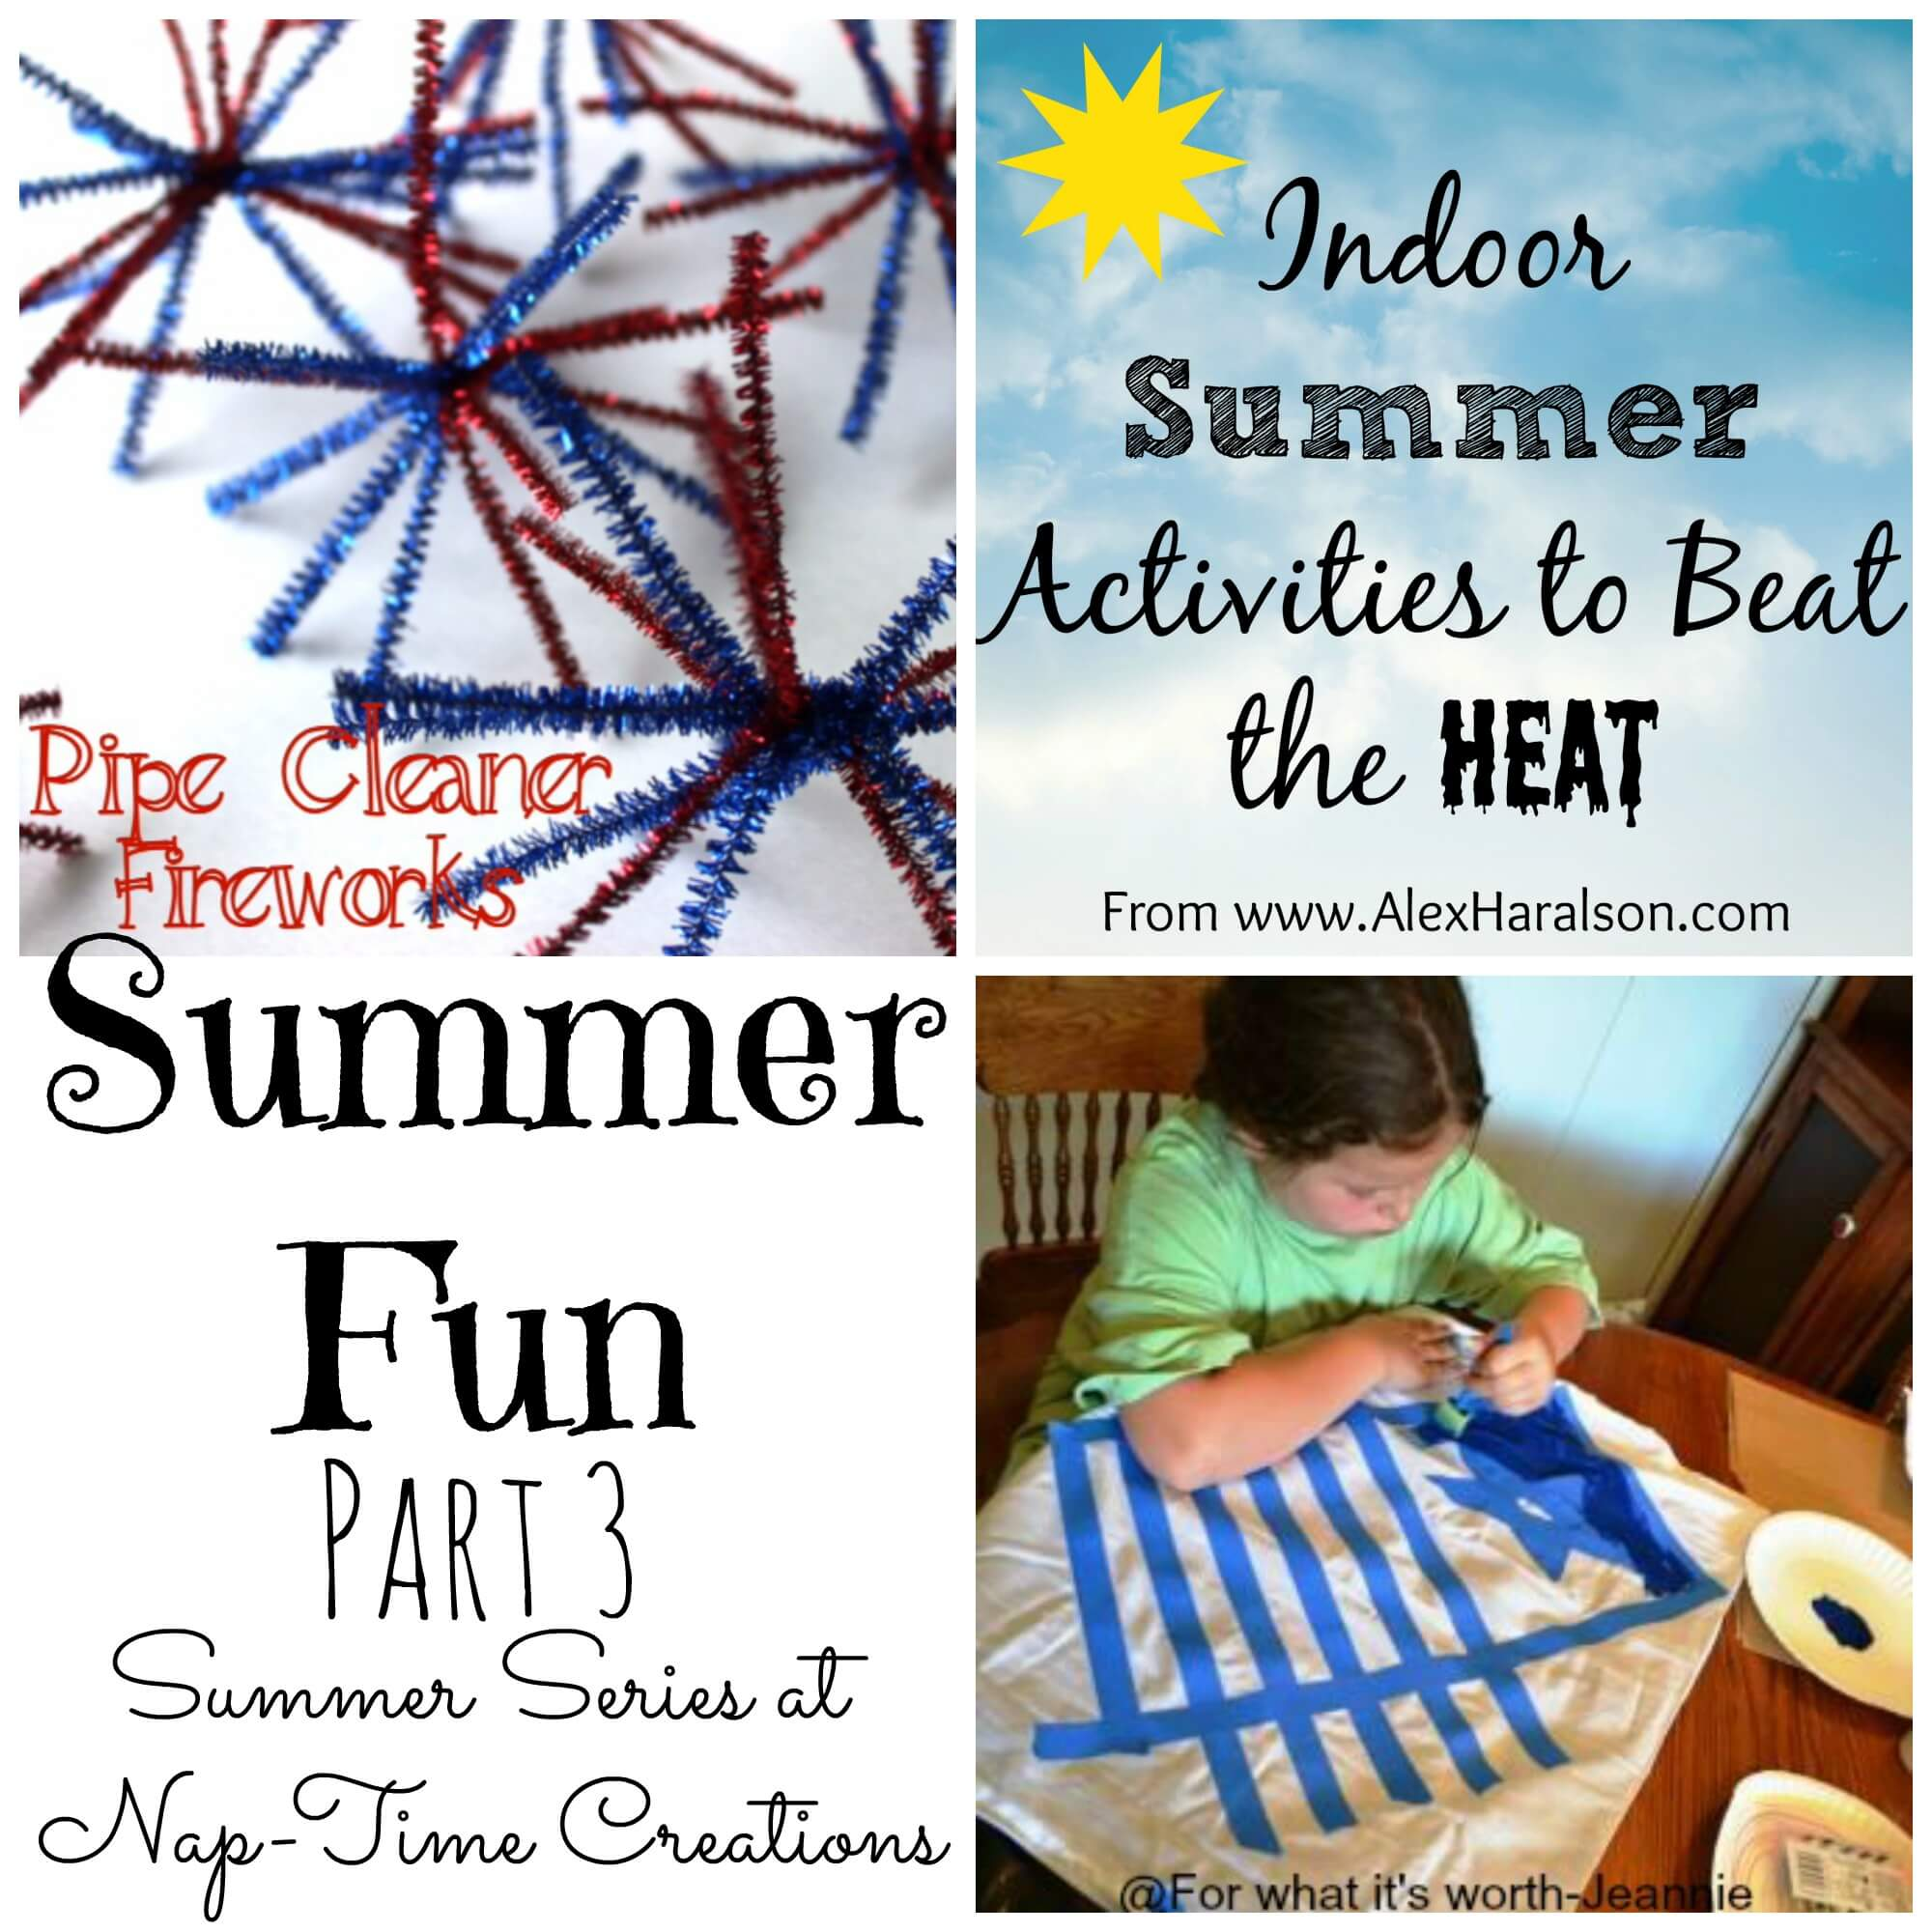 Just For Fun Twitter Giveaway By: Indoor Summer Fun Ideas + GIVEAWAY